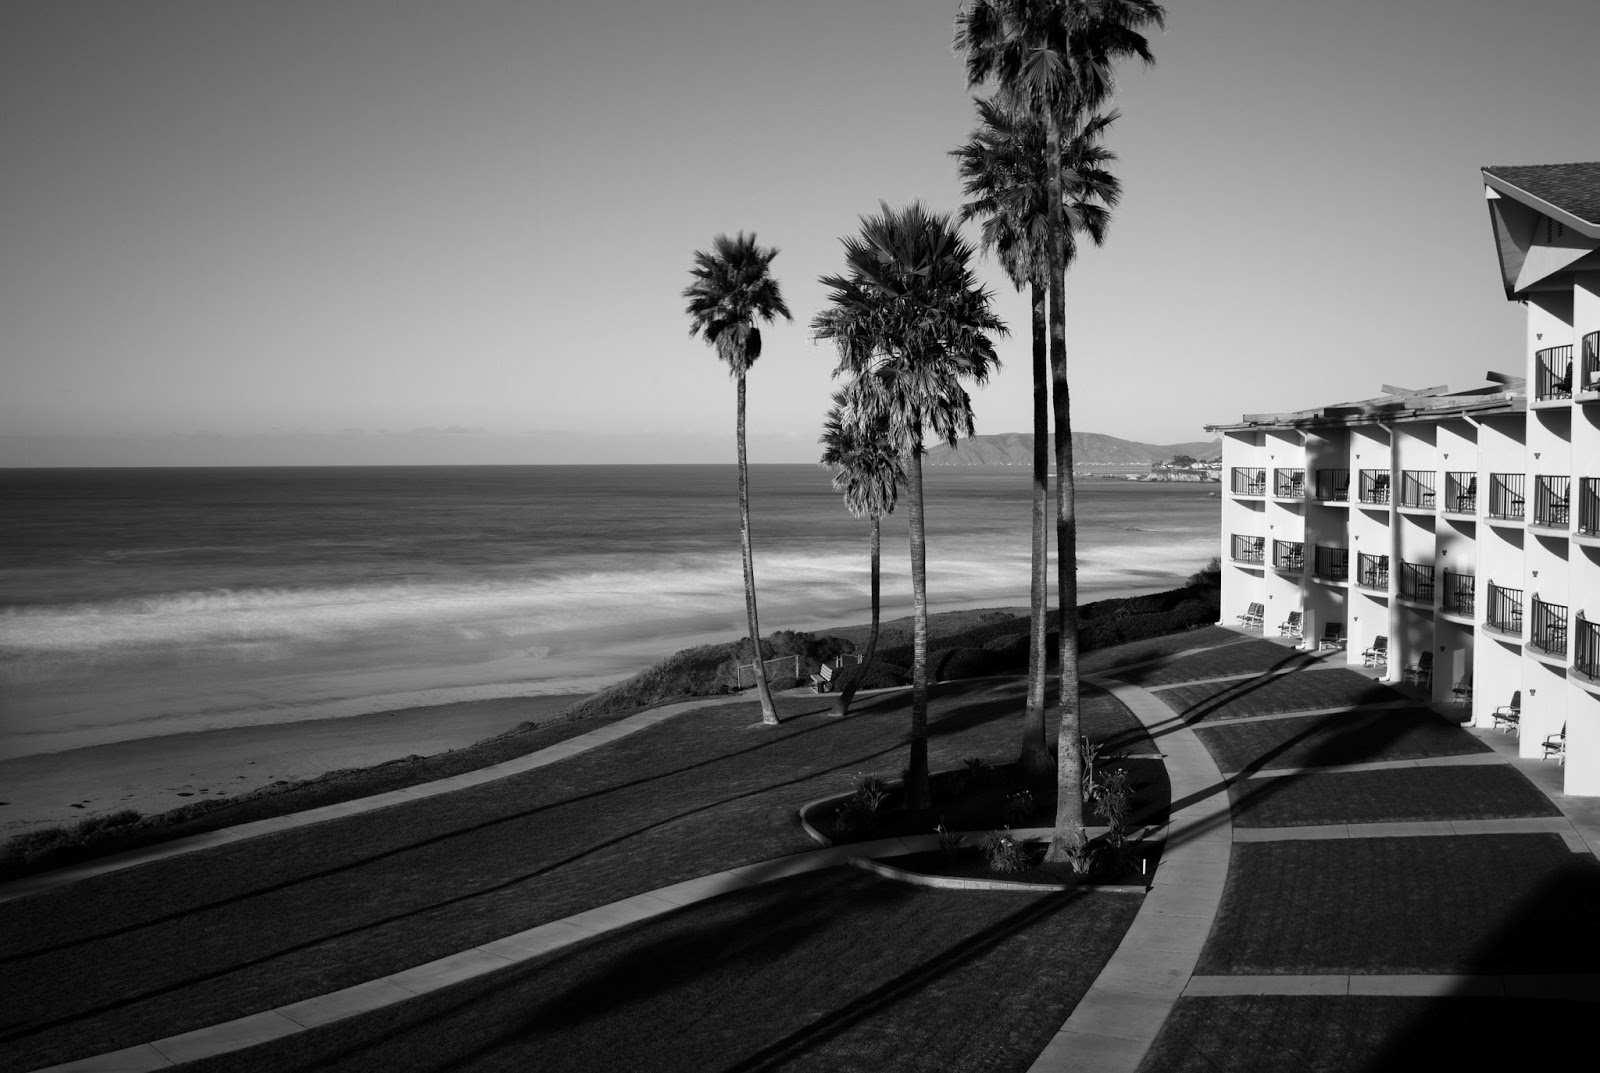 Kon titki retro classic pismo beach california black and white photography